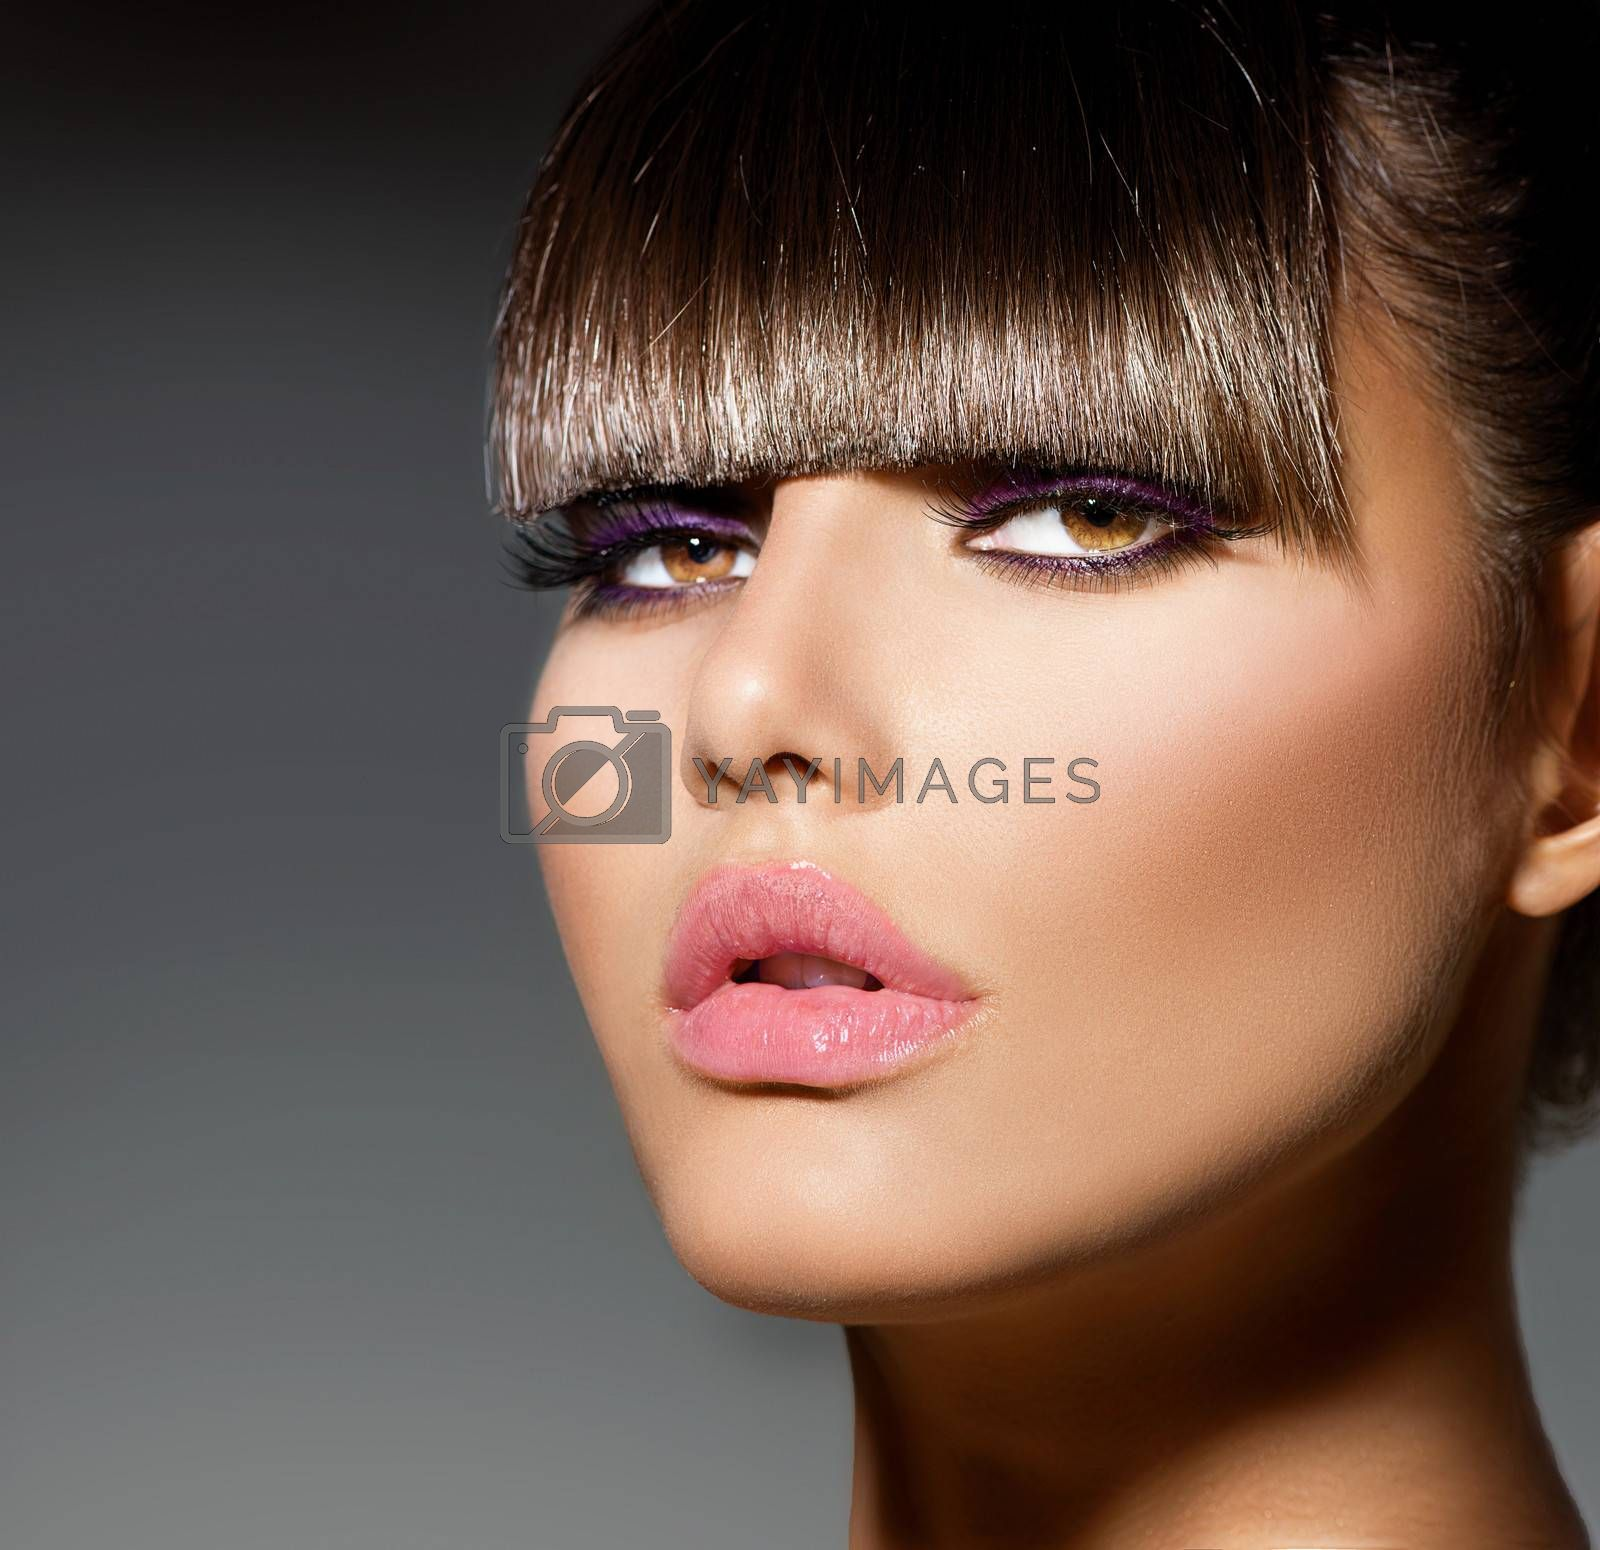 Fringe. Fashion Model Girl With Trendy Hairstyle and Makeup by SubbotinaA